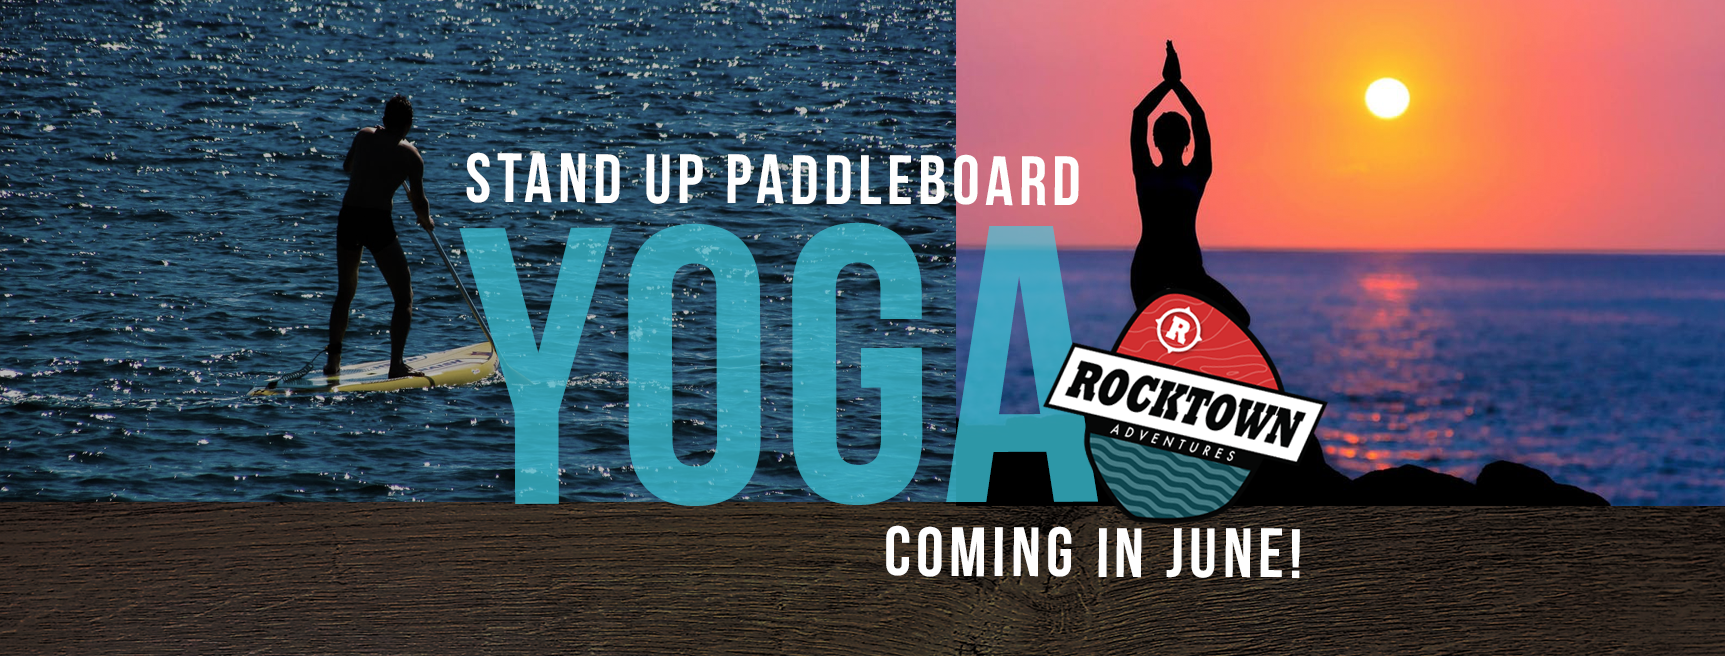 Rocktown Adventures   Stand Up Paddleboard Yoga